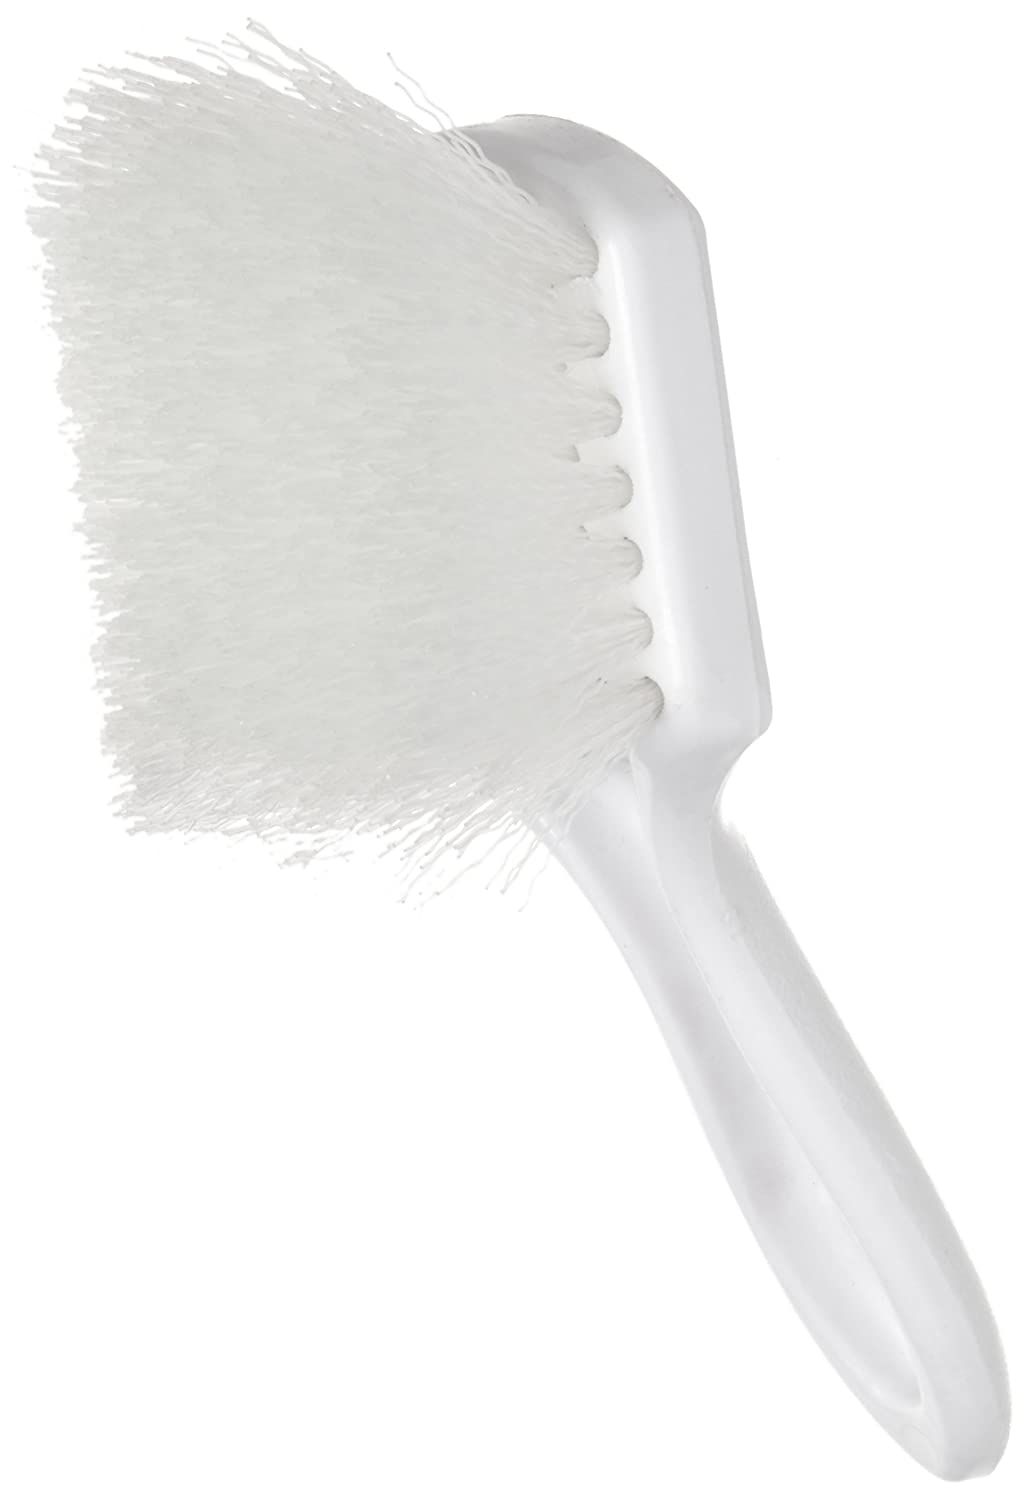 8 Overall Length Weiler 44416 Nylon Utility Scrub Brush with Long Plastic Handle 1-1//2 Head Width